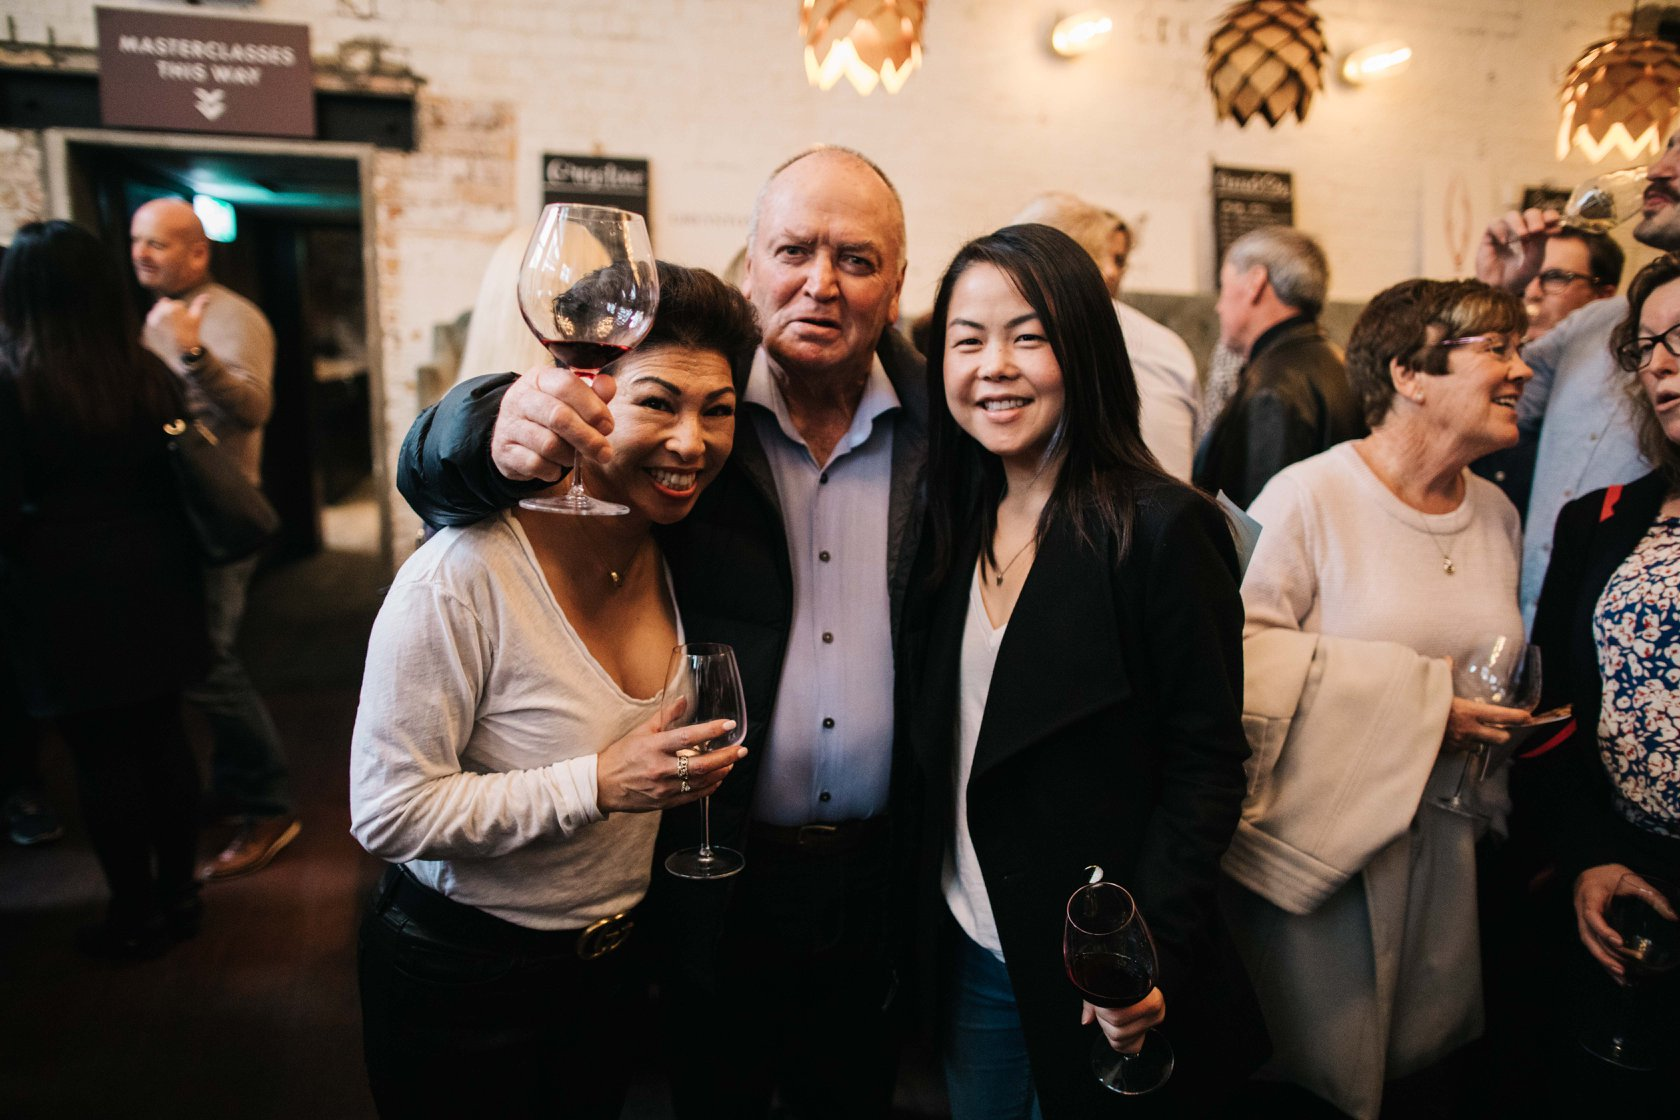 Yes, it's Graham Henry at this year's Boutique Wine Festival